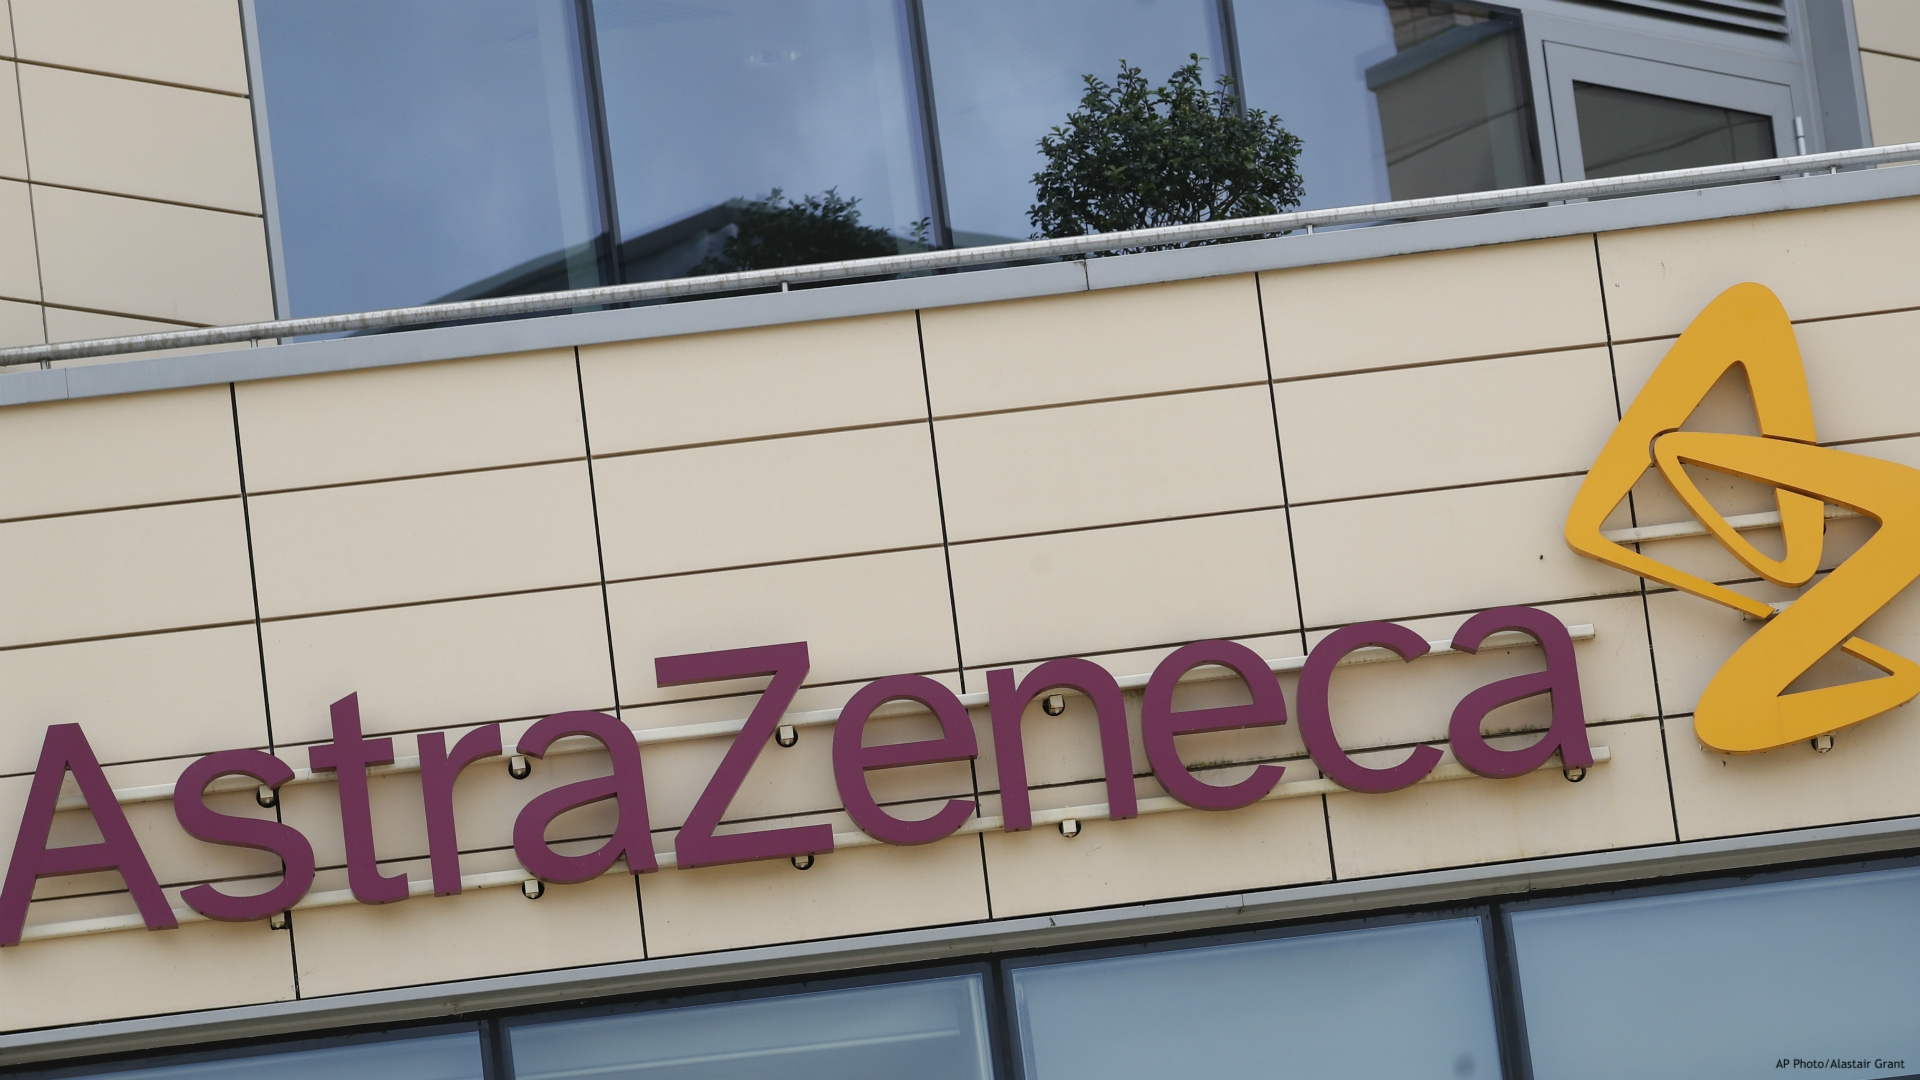 This July 18, 2020, file photo, shows the AstraZeneca offices in Cambridge, England. AstraZeneca announced Monday, Aug. 31, its vaccine candidate has entered the final testing stage in the U.S. The company said the study will involve up to 30,000 adults from various racial, ethnic and geographic groups. (AP Photo/Alastair Grant, File)